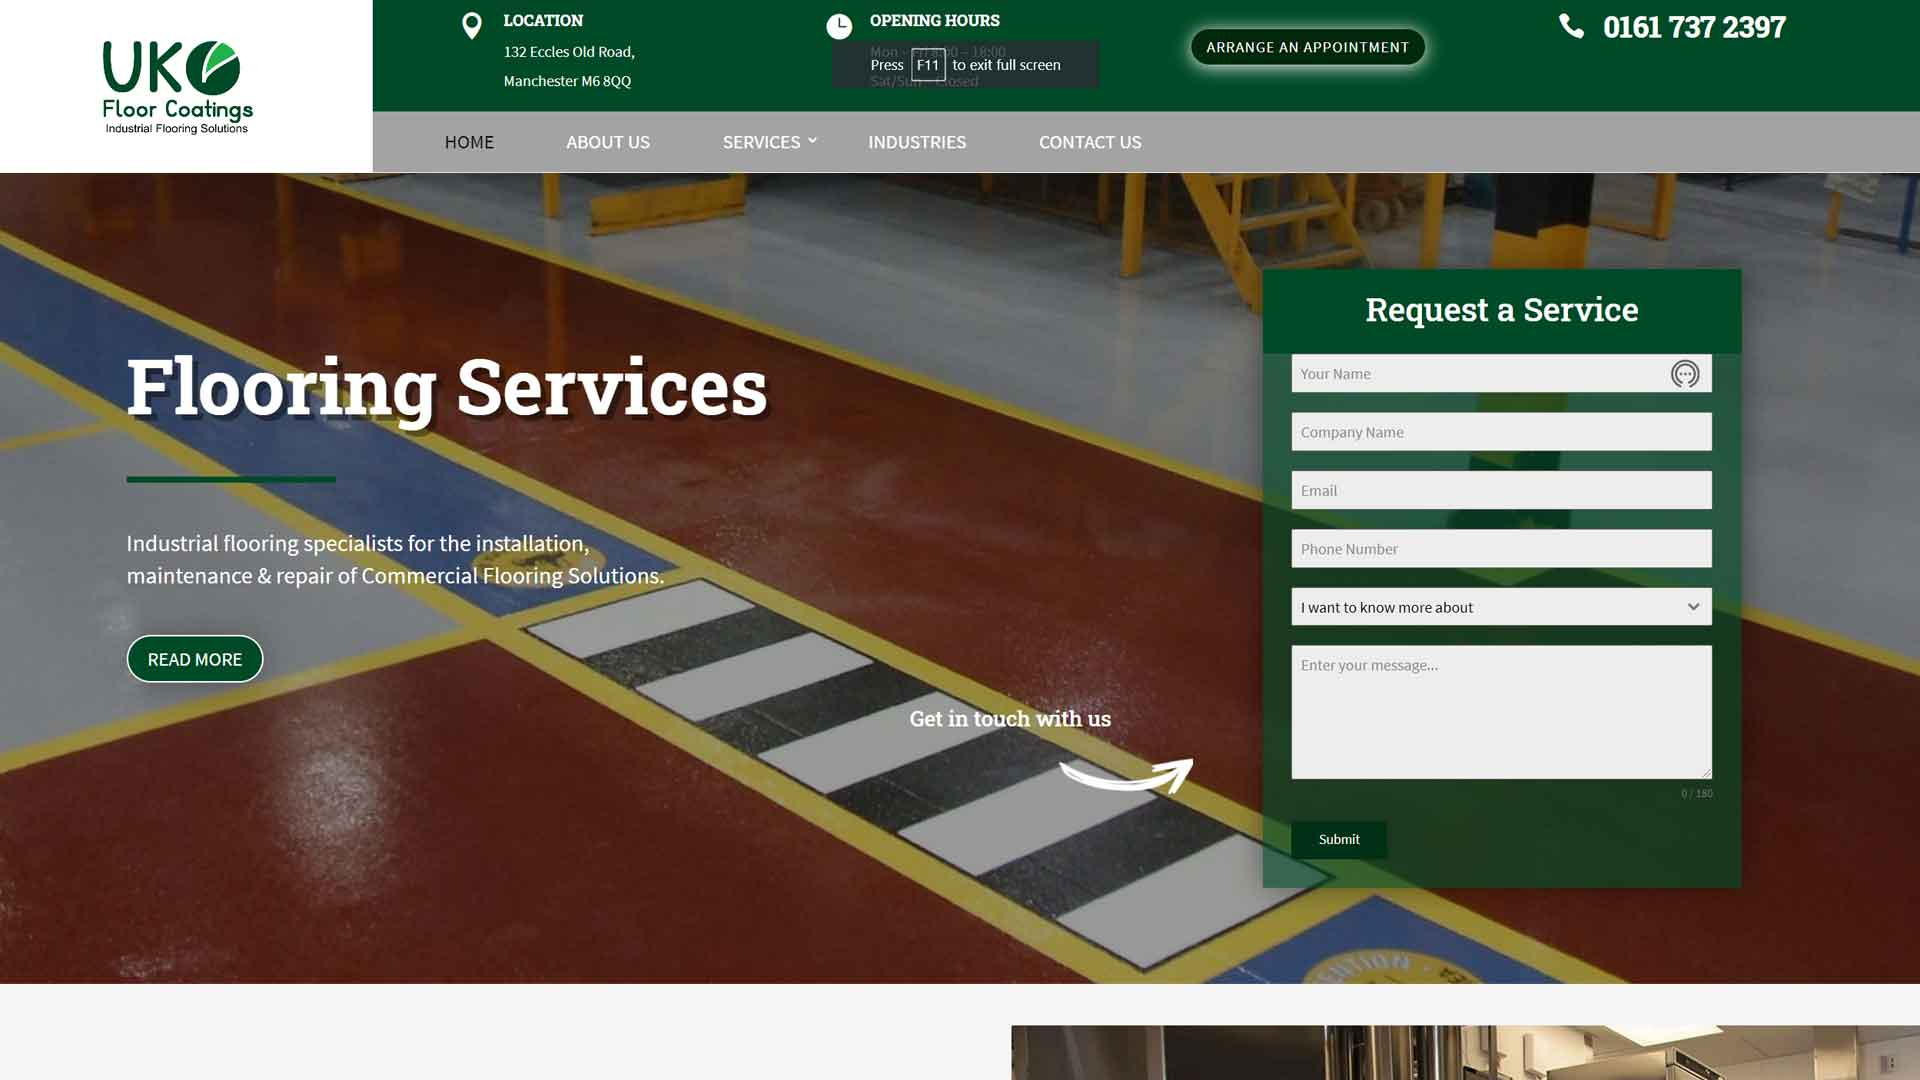 Trades and Construction Website Design Image